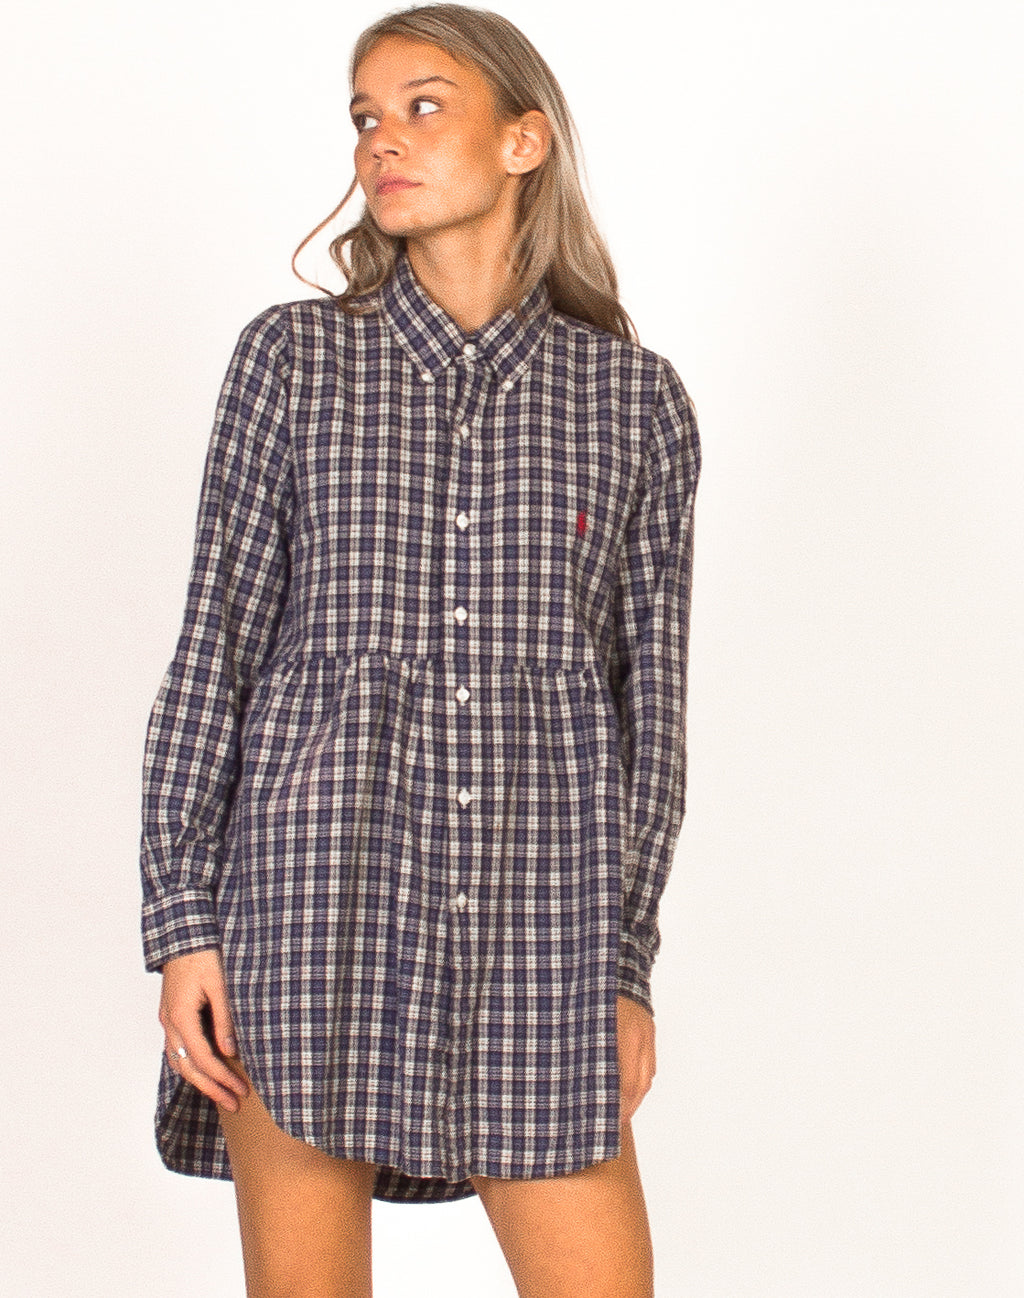 RALPH LAUREN BLUE CHECK SMOCK DRESS